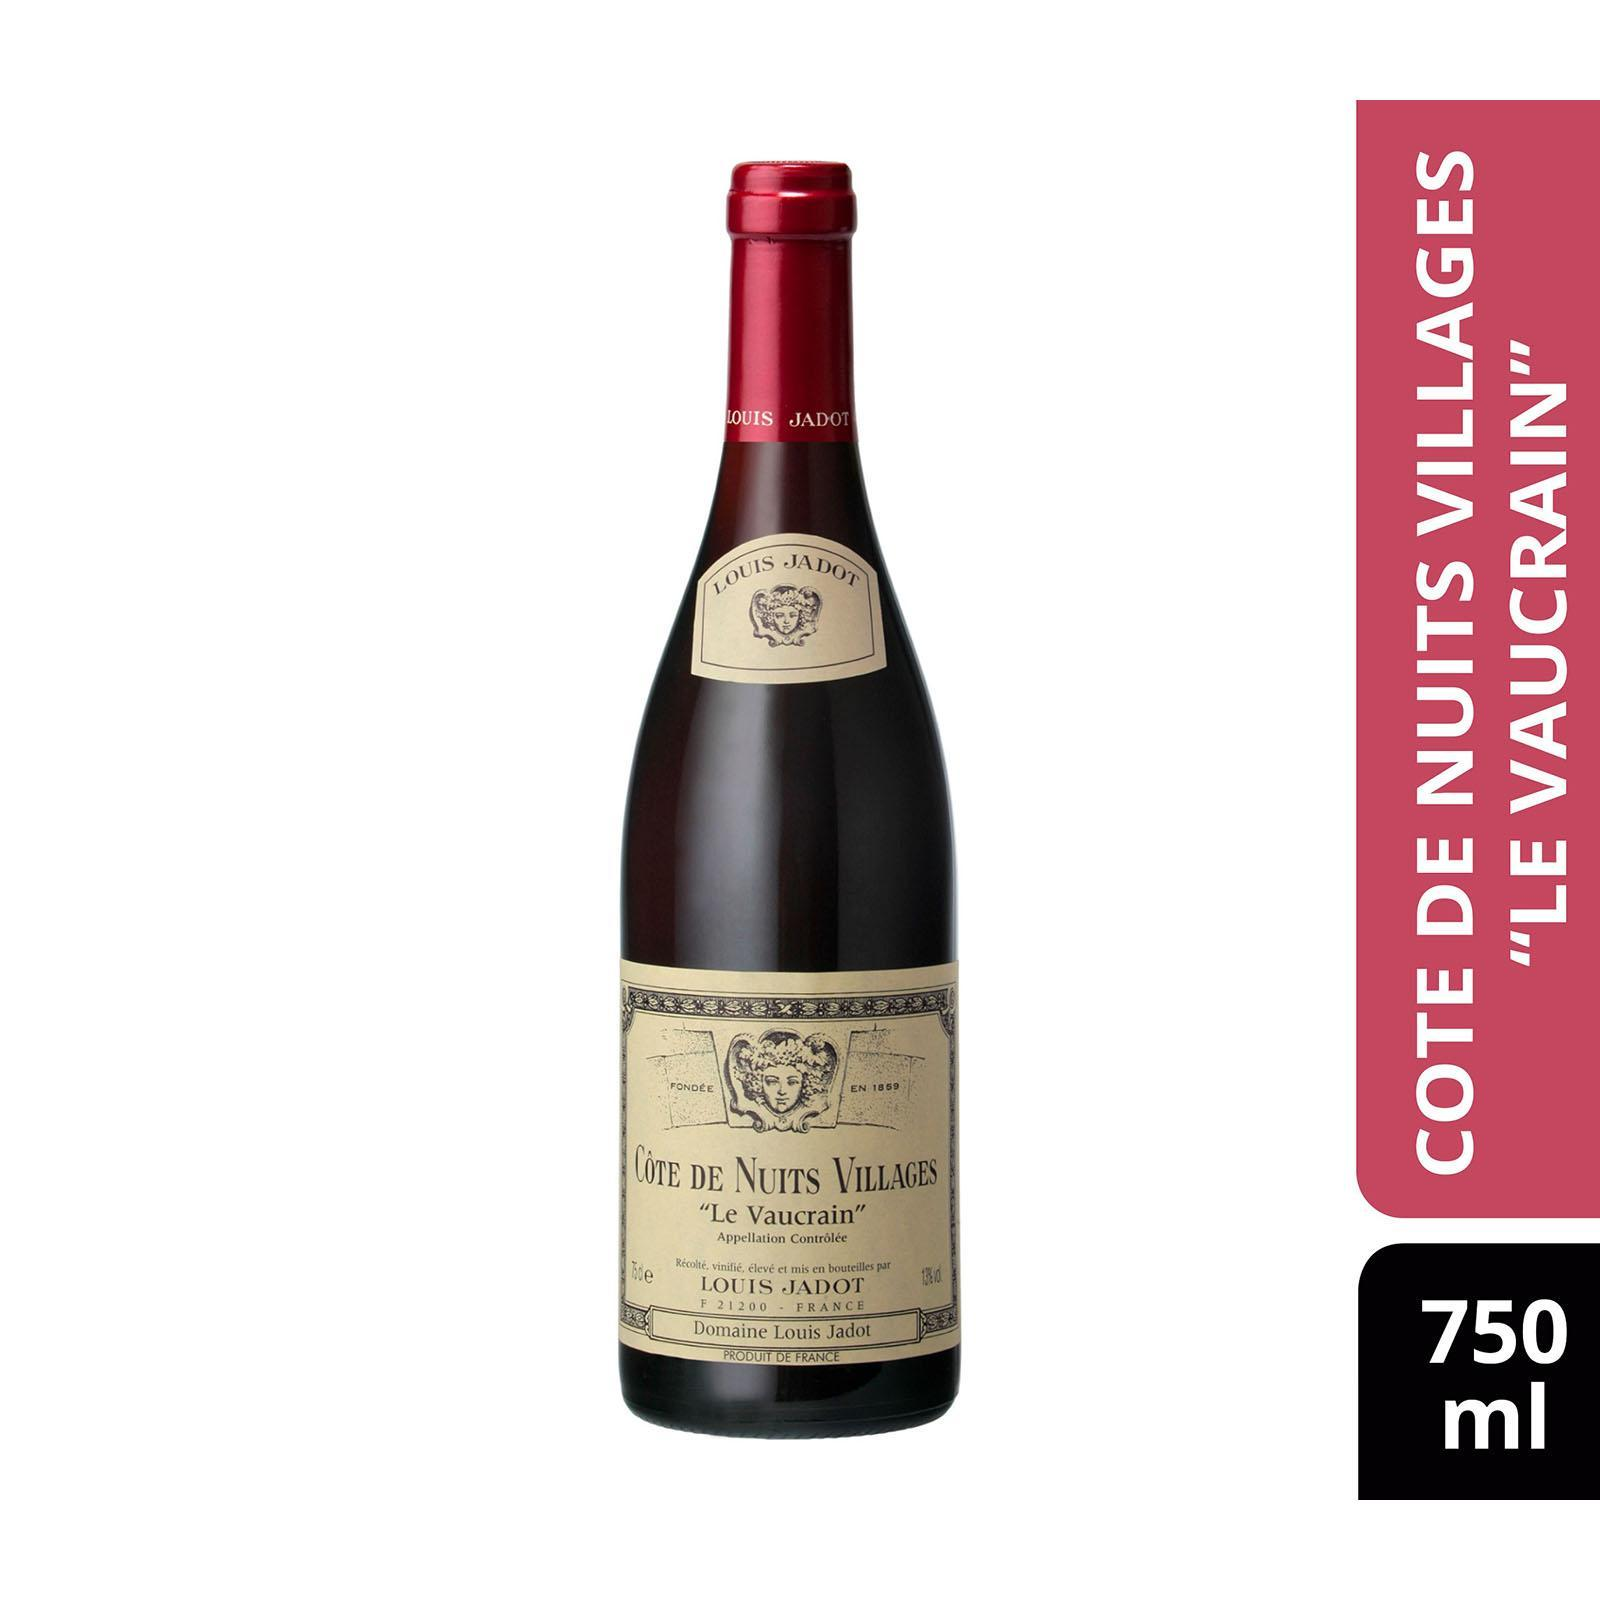 Louis Jadot Cote-De-Nuits Villages Le Vaucrain - By Culina